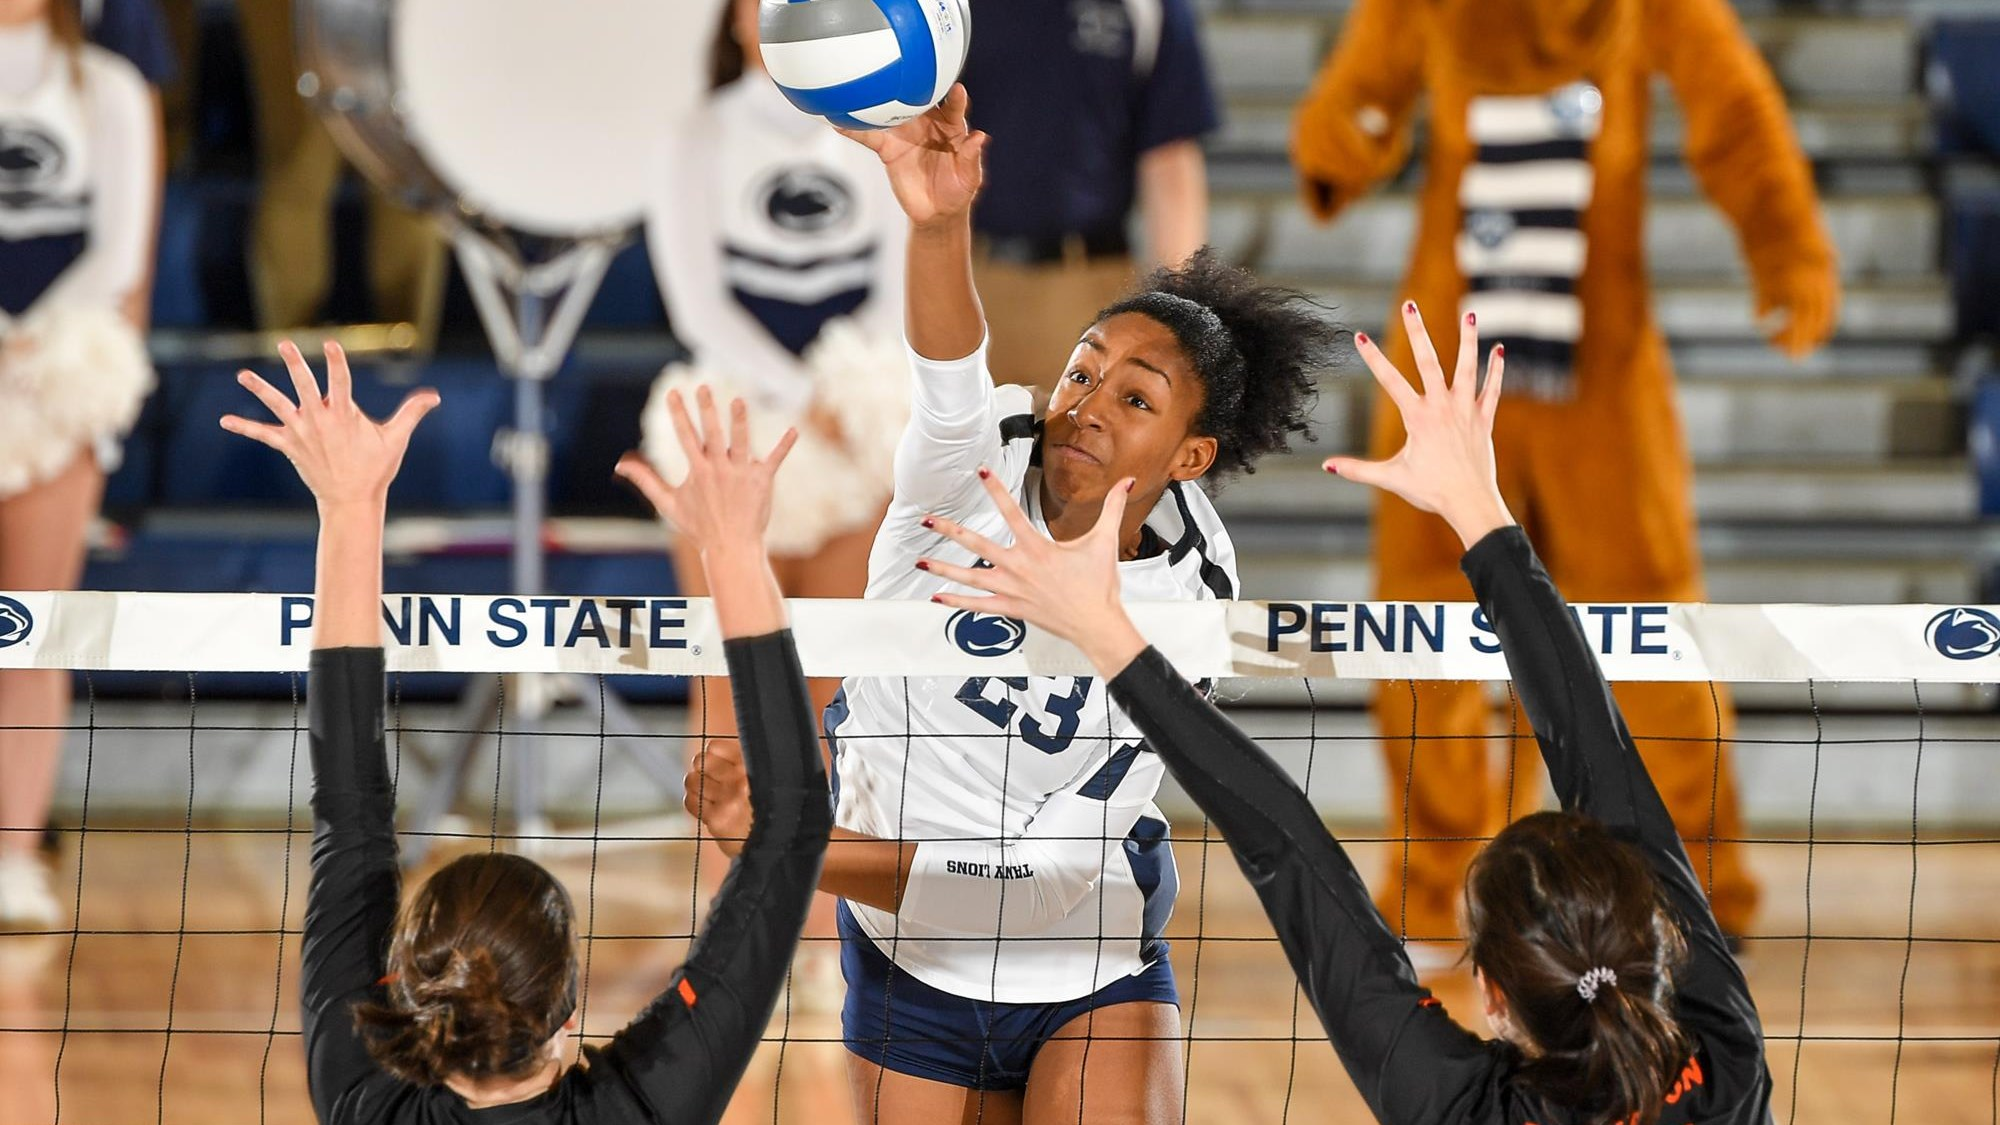 Penn State Opens Ncaa Tournament With Sweep Over Princeton Penn State University Athletics